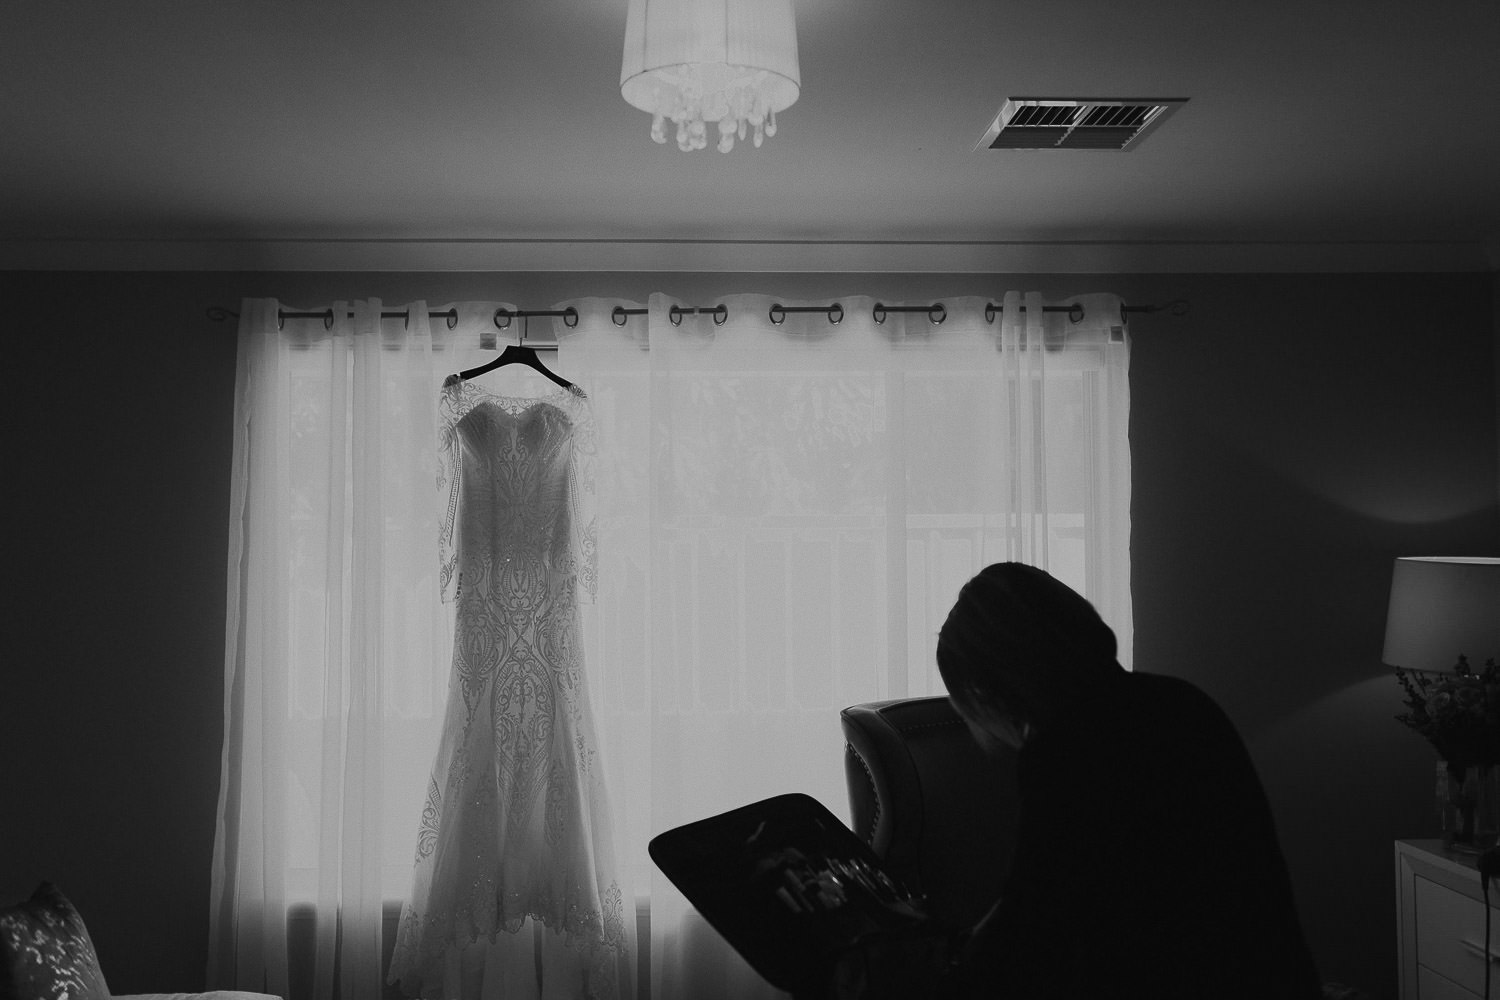 Black and white photo Fatimah Mohsin wedding dress in background